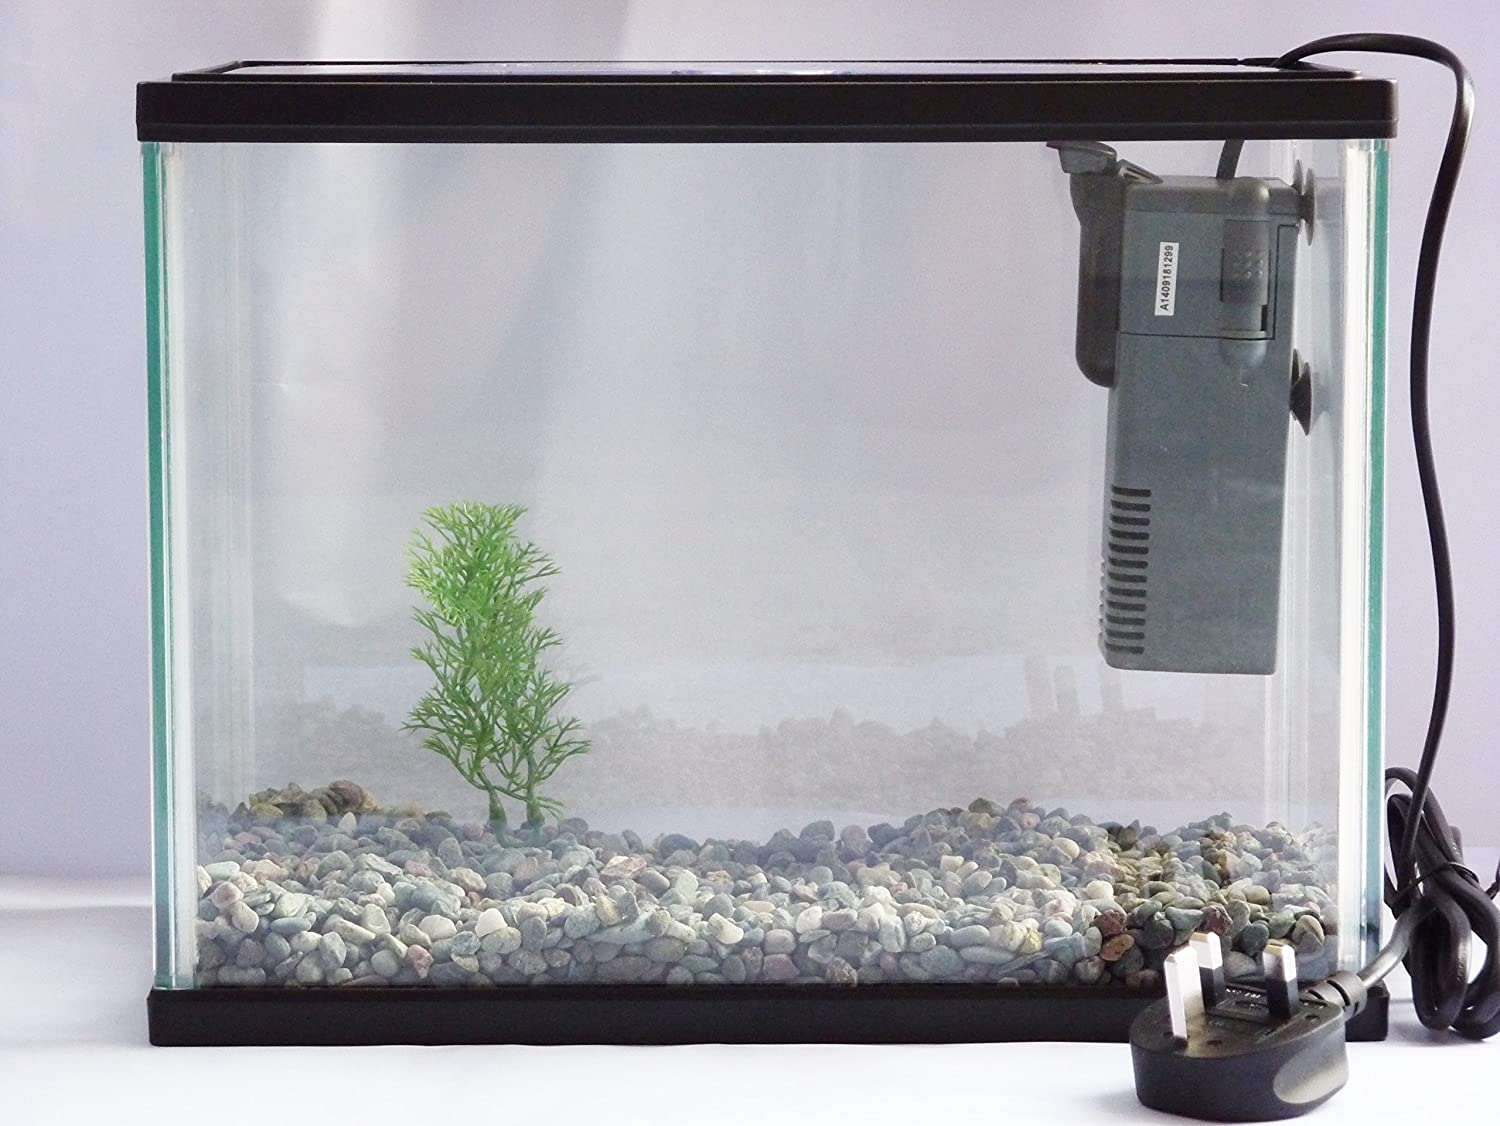 Small nano aquarium fish tank tropical - Starter Aquarium Small Fish Tank Complete With Filter Plant Fish Net